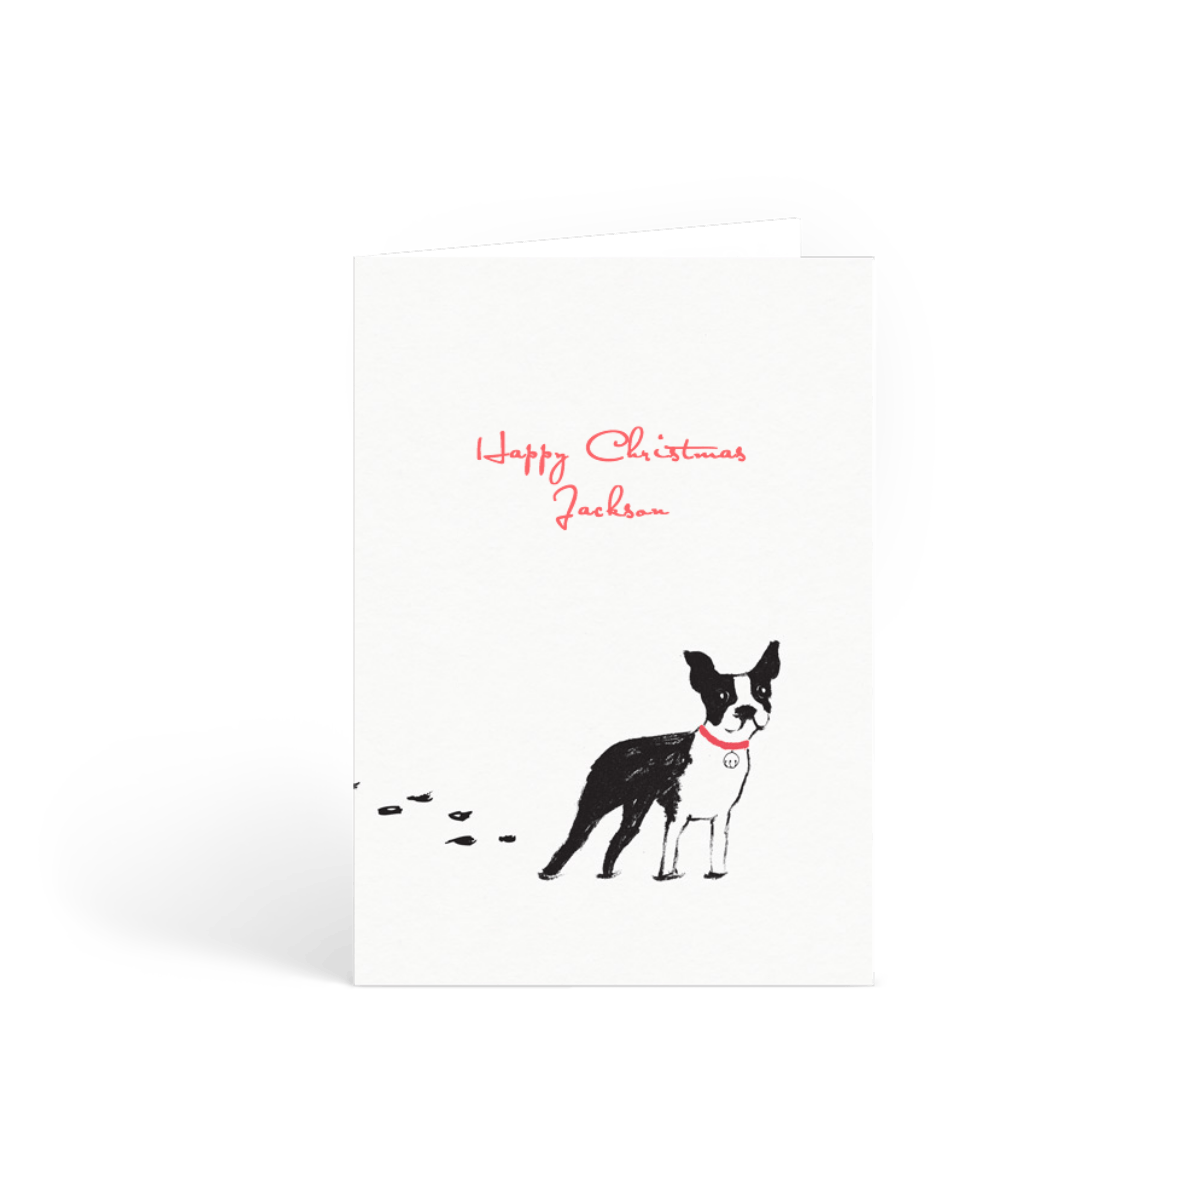 Https%3a%2f%2fwww.papier.com%2fproduct image%2f3513%2f2%2fchristmas pup 939 front 1541422613.png?ixlib=rb 1.1